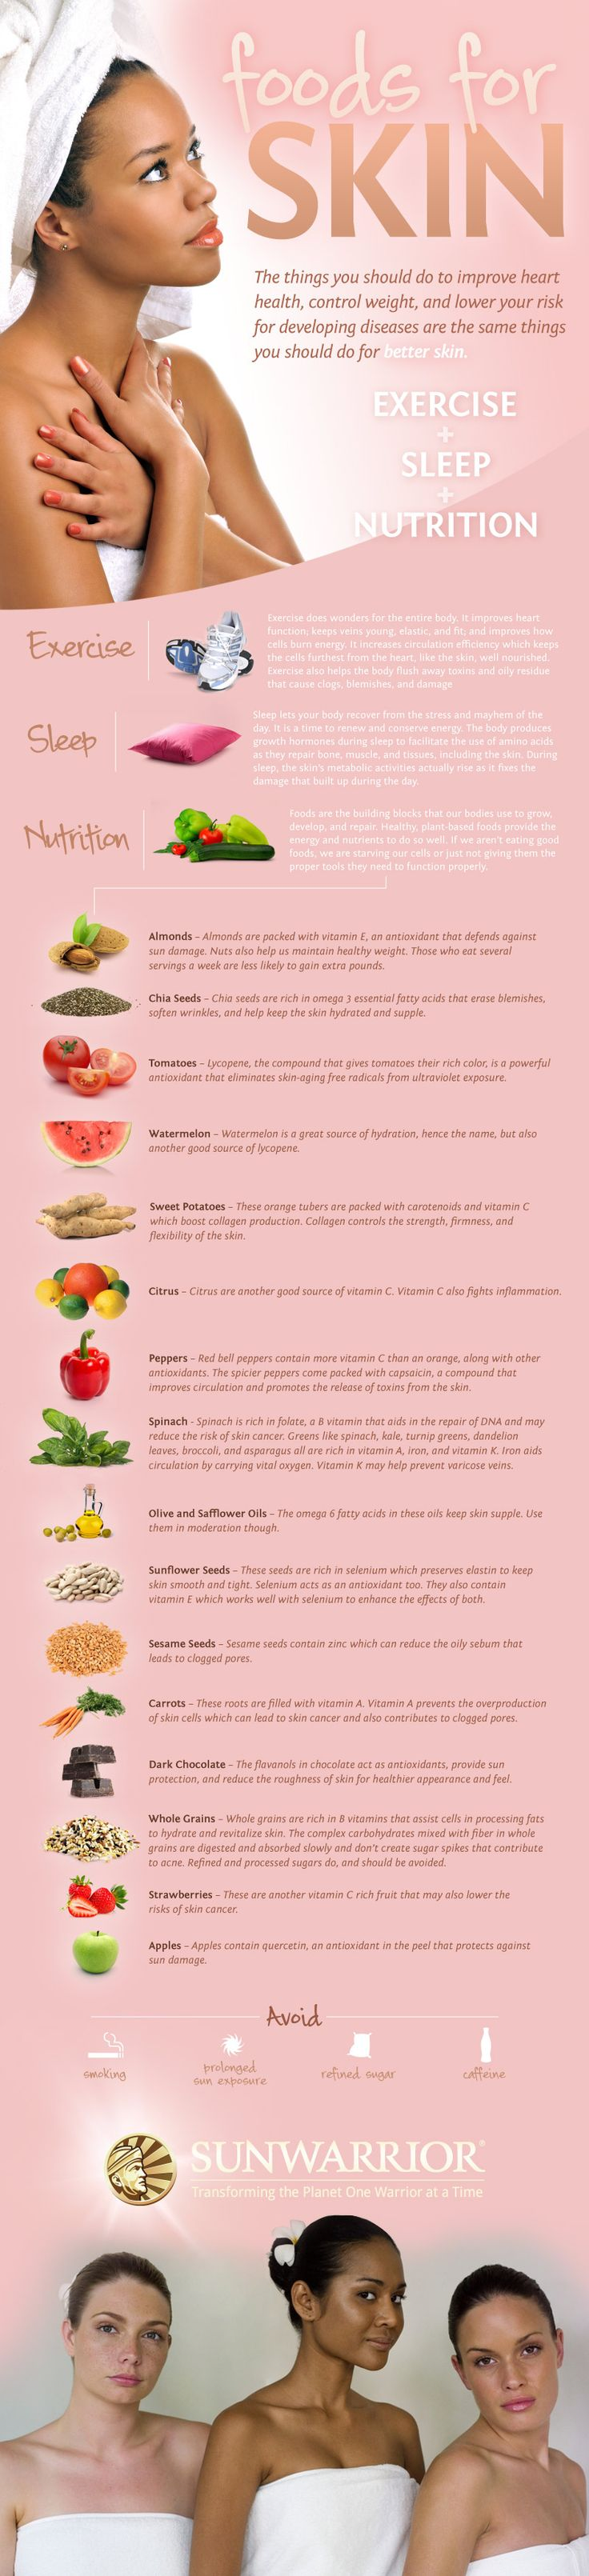 foods for skin